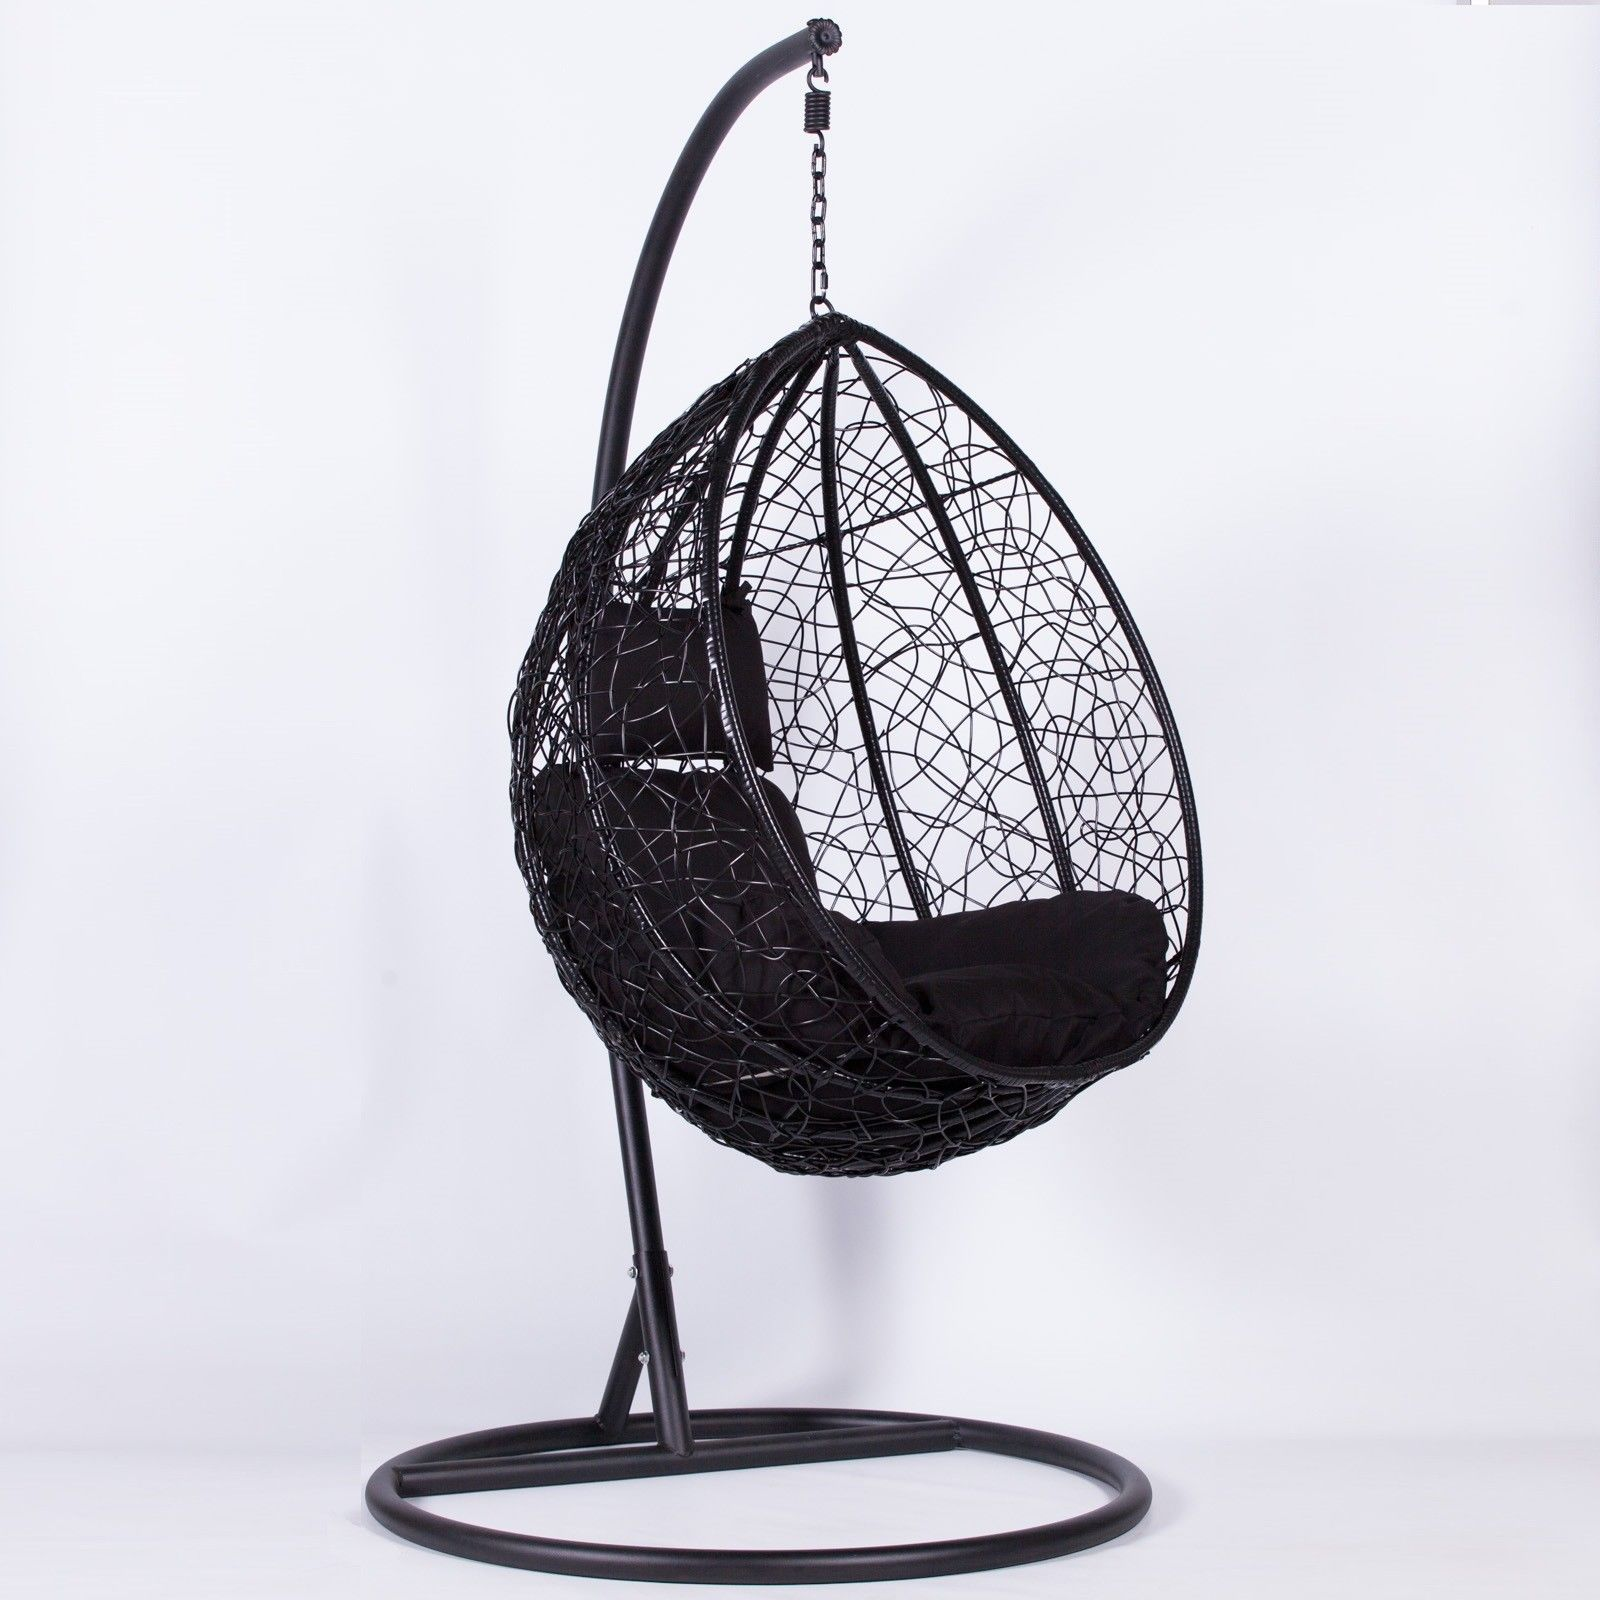 Rattan Black Swing Weave Patio Garden Hanging Egg Chair Furniture La Maison Chic Luxury Interiors